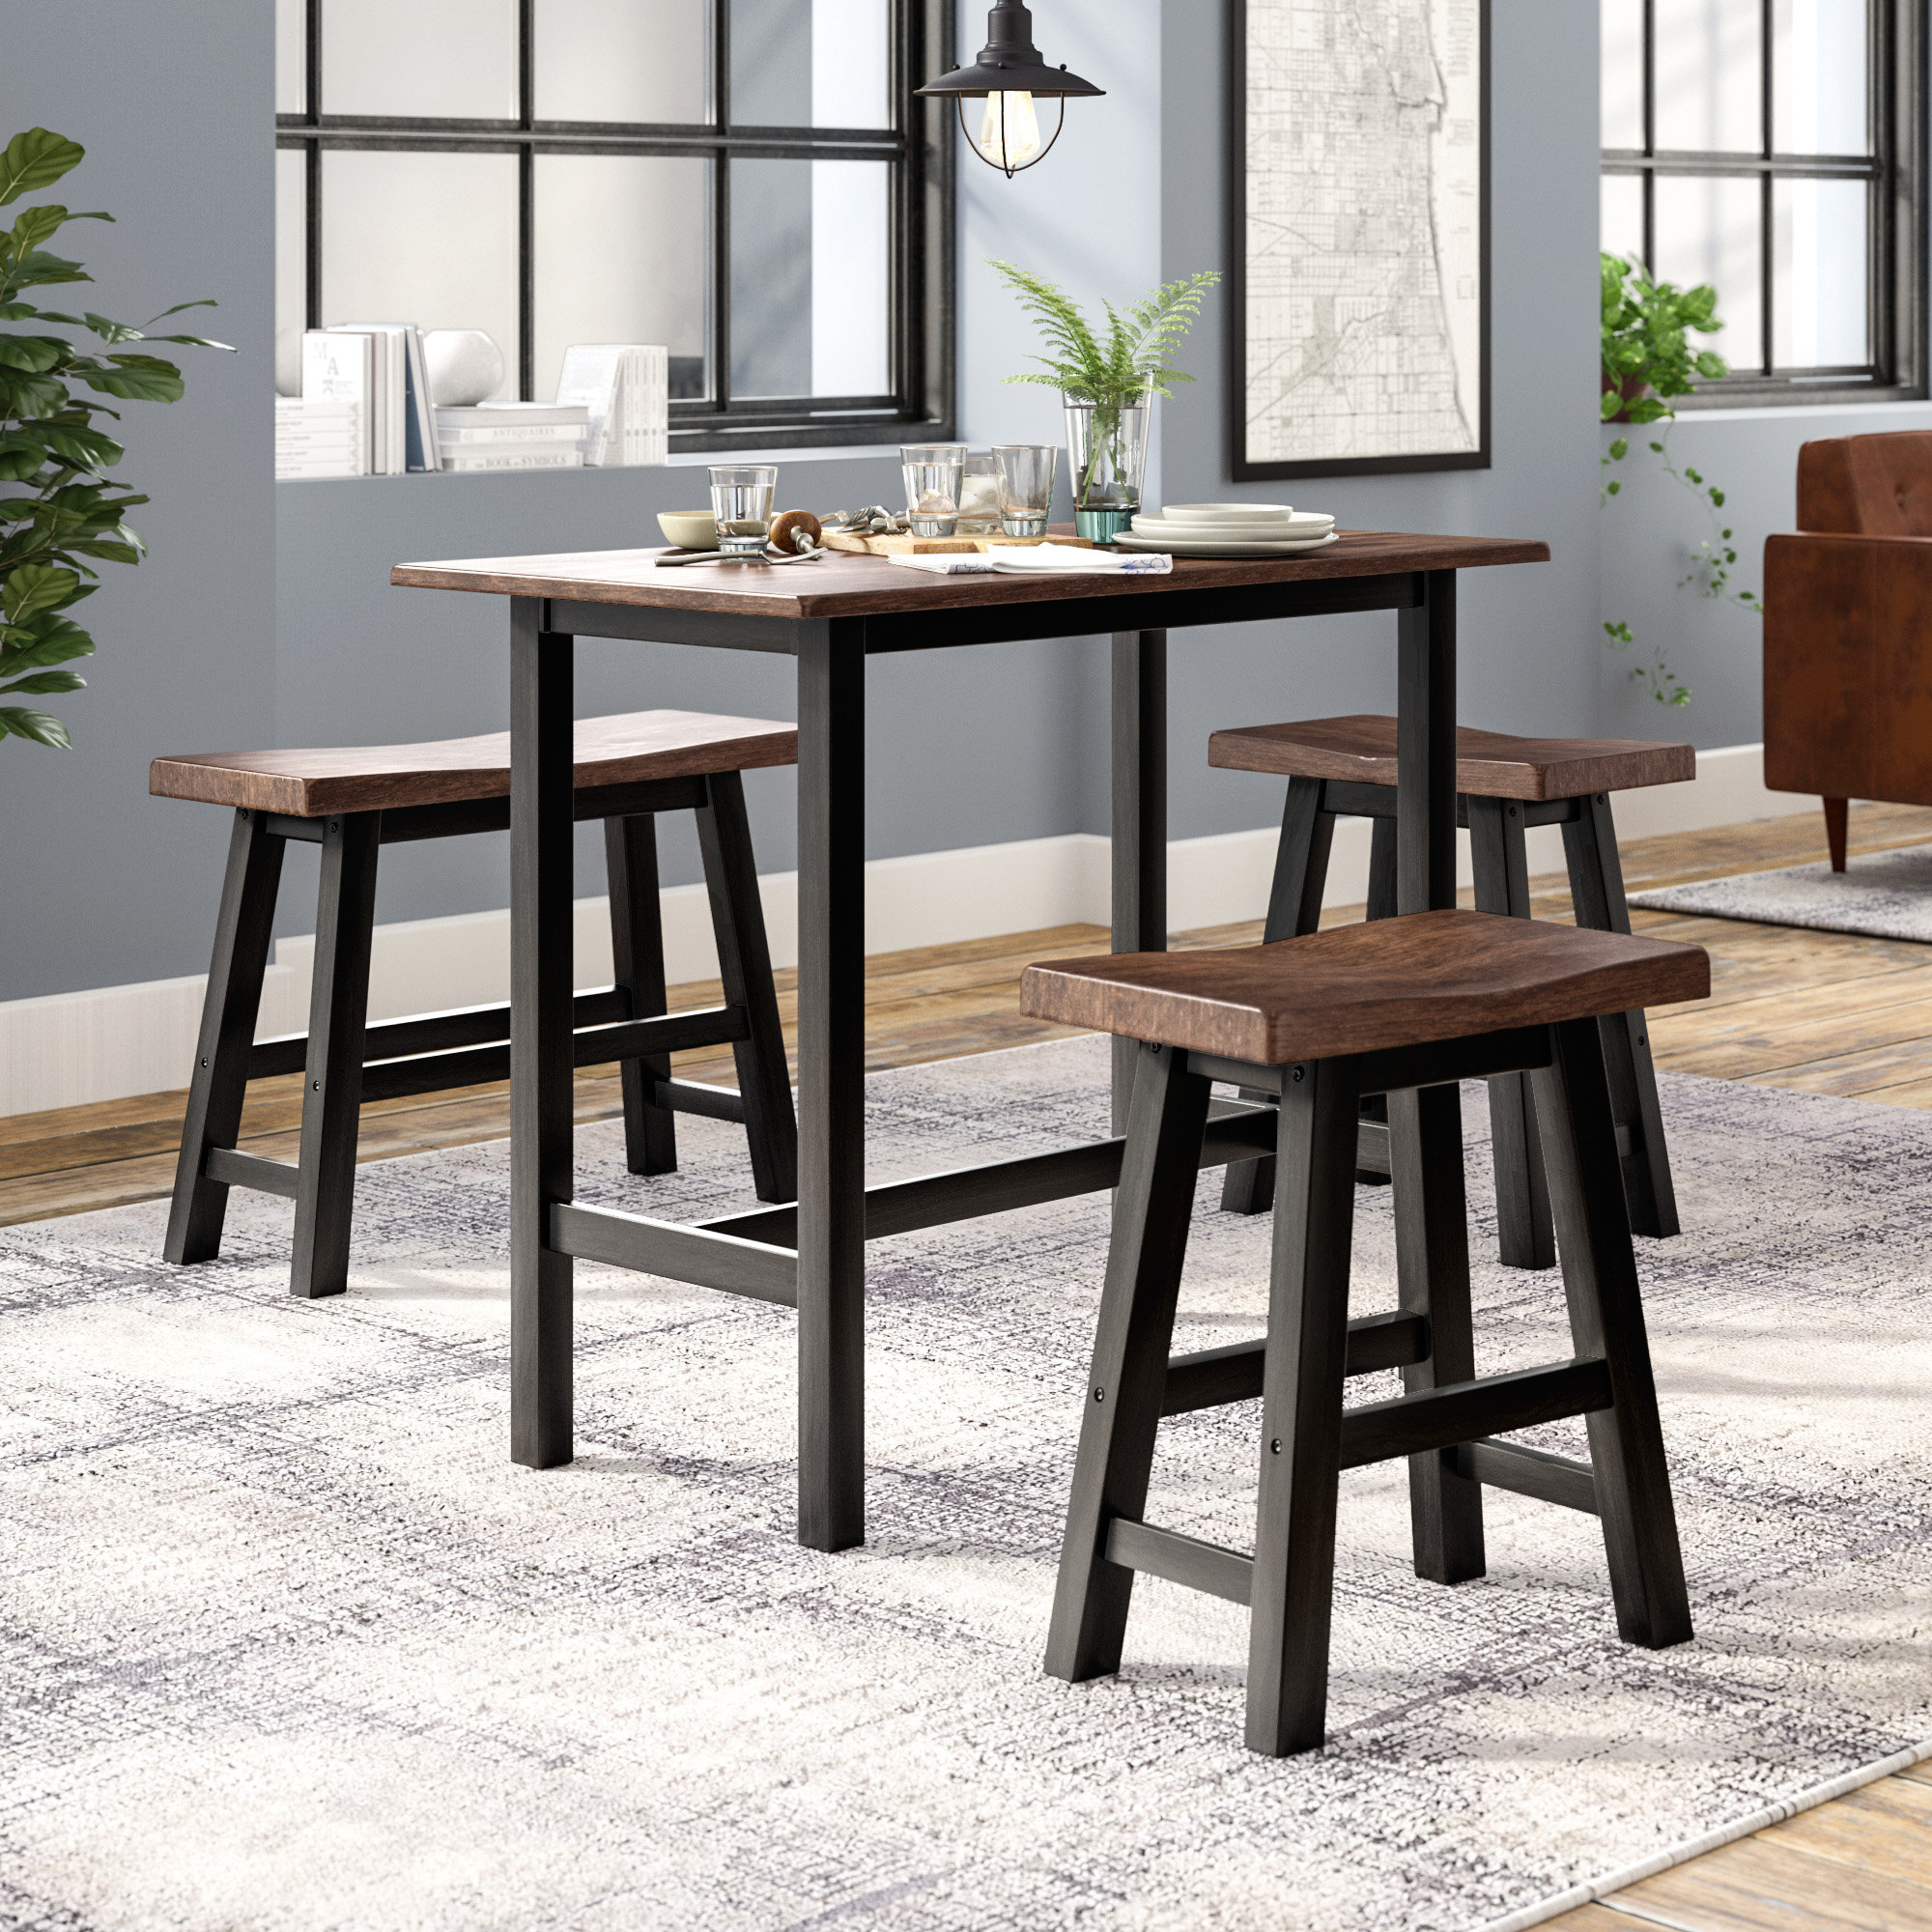 Inspiration about Preferred Weatherholt Dining Tables Intended For Trent Austin Design Chelsey 4 Piece Dining Set & Reviews (#7 of 20)